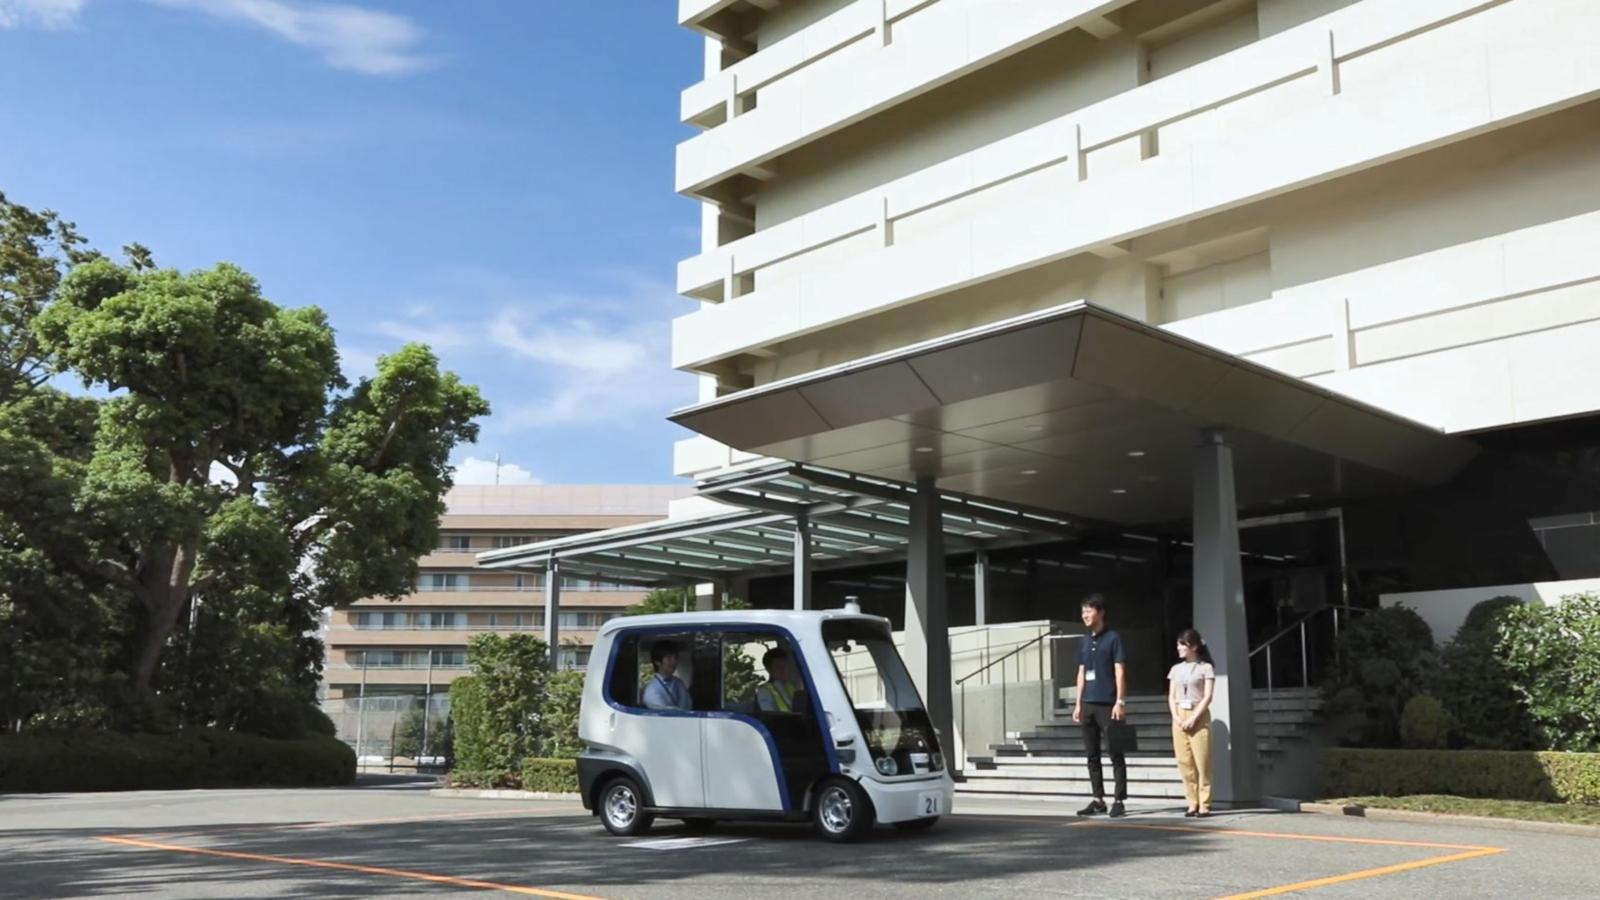 Photo: Panasonic launched autonomous ride share service around its headquarters.